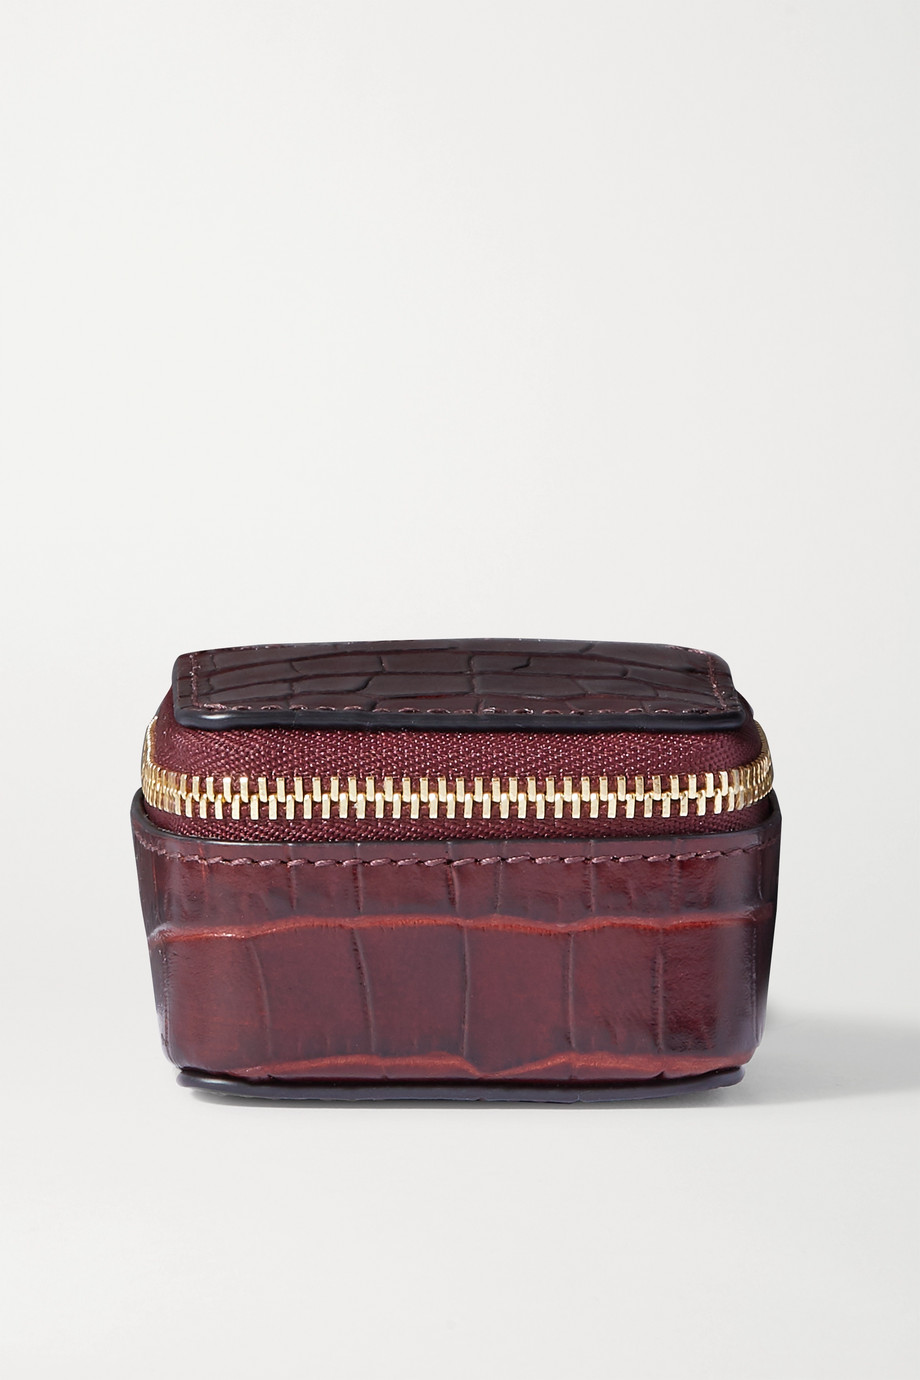 Smythson Mara glossed croc-effect leather pouch